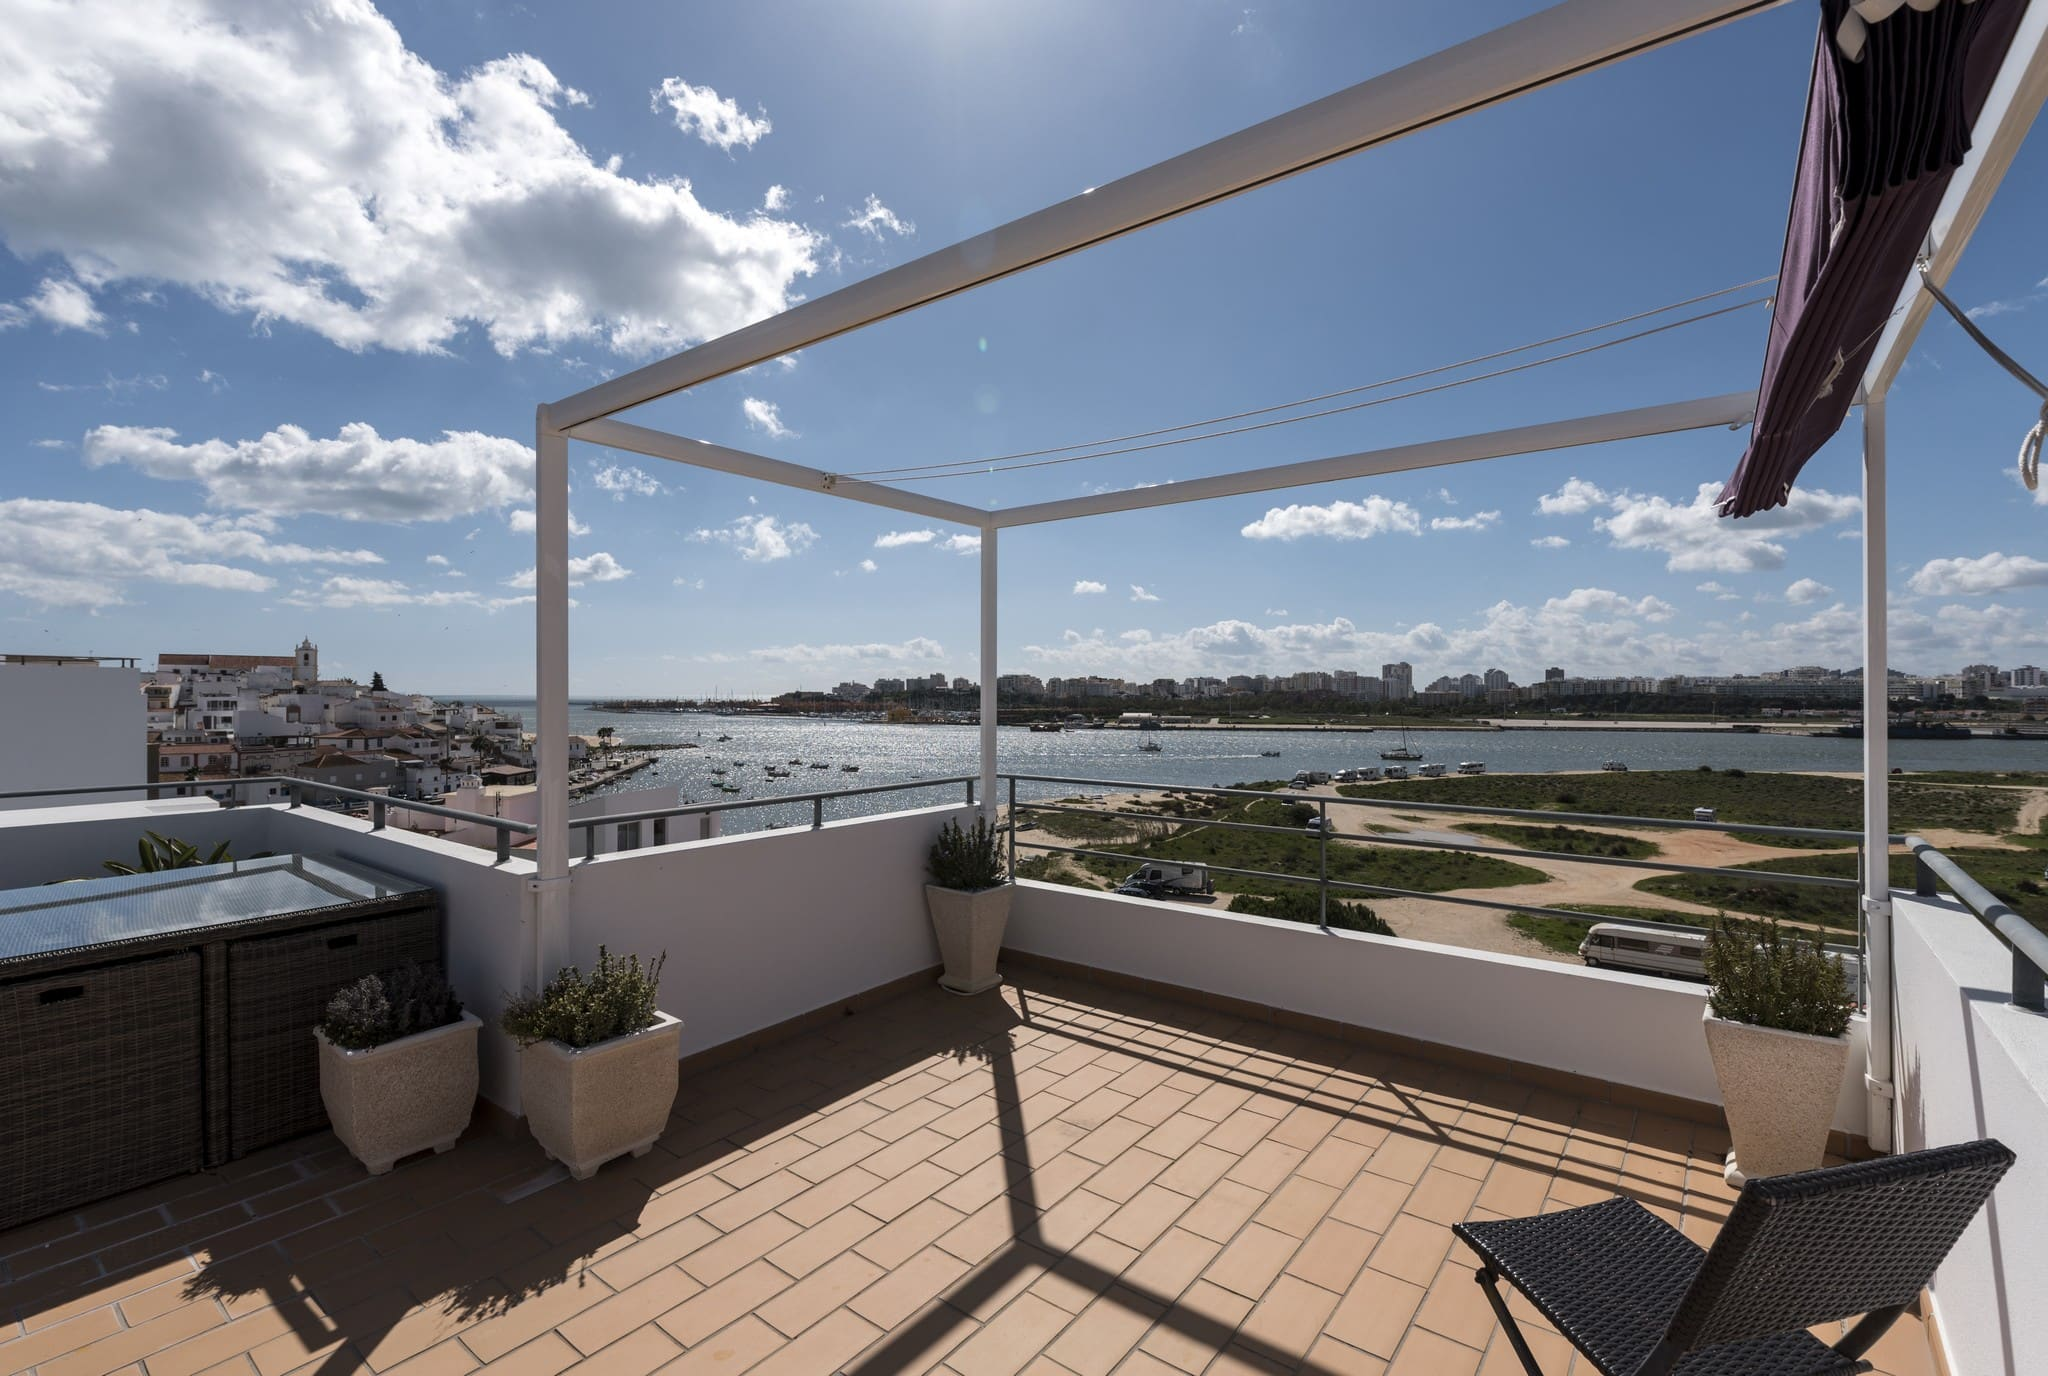 Superb 2 / 3 Bedroom linked Villa with stunning views.